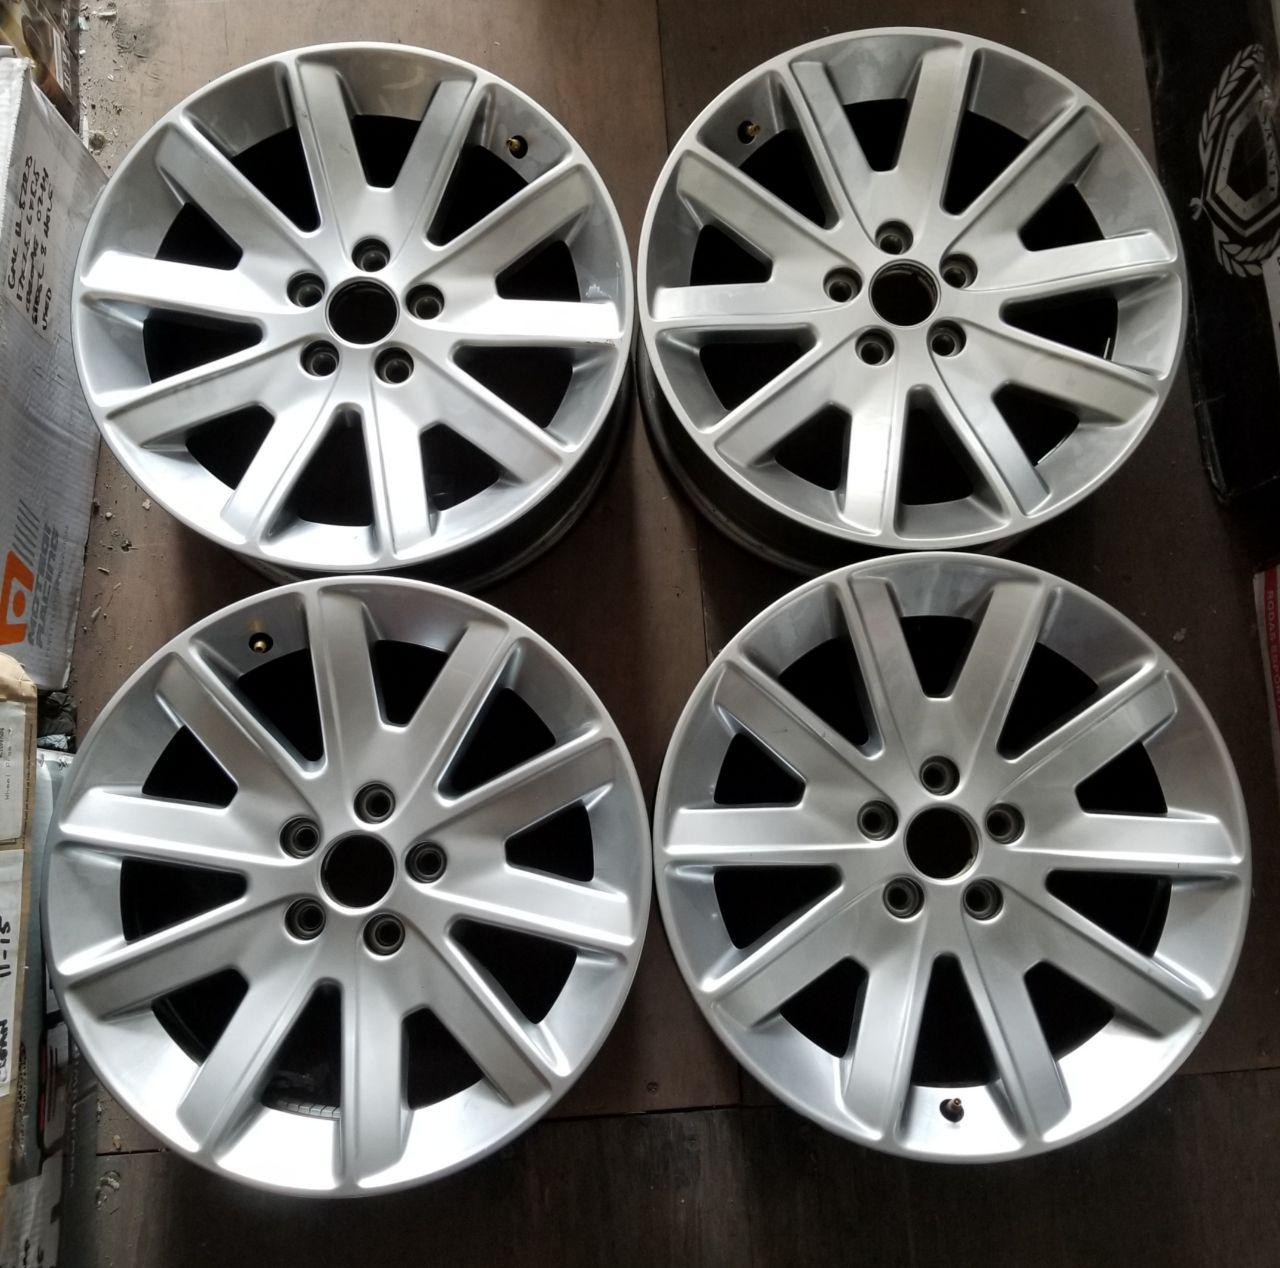 - OEM WHEELS - 2009-2012 FORD FLEX 18x7.5 10 SPOKE Hollander #3769 /  USED